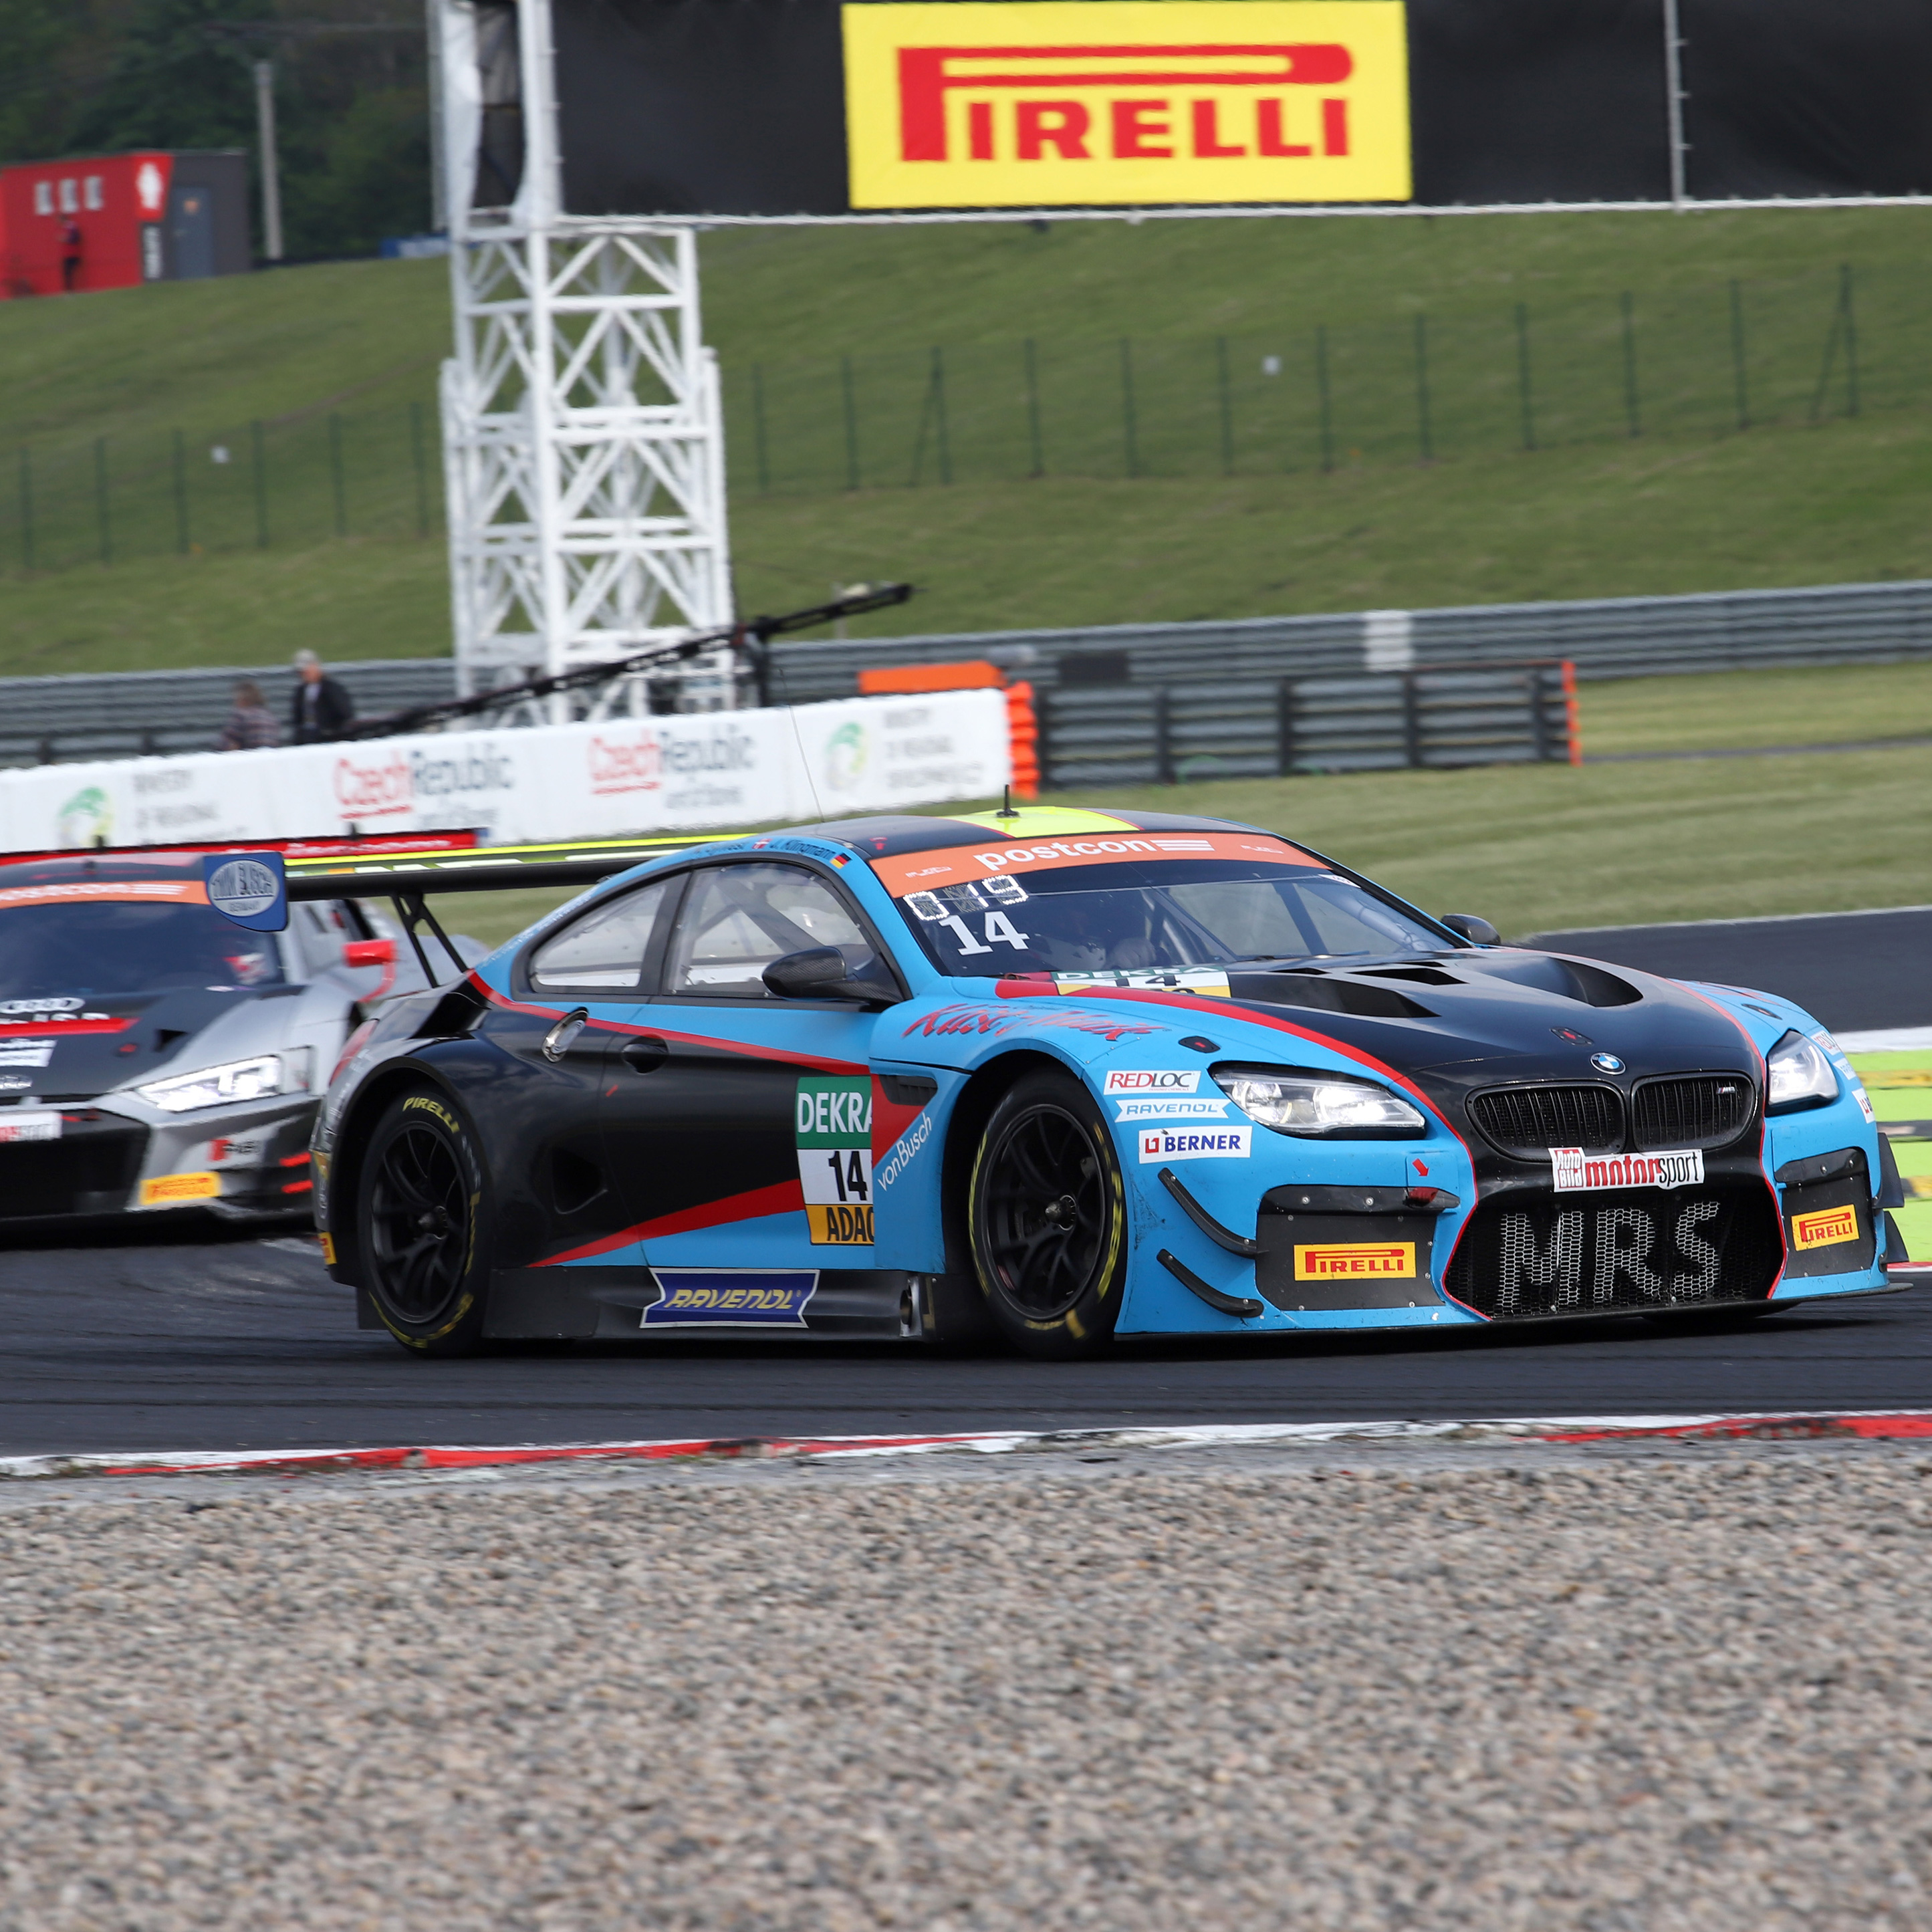 mrs-bmw-m6-gt3-adac-gtm-most-2019.05-05 PAD PIC